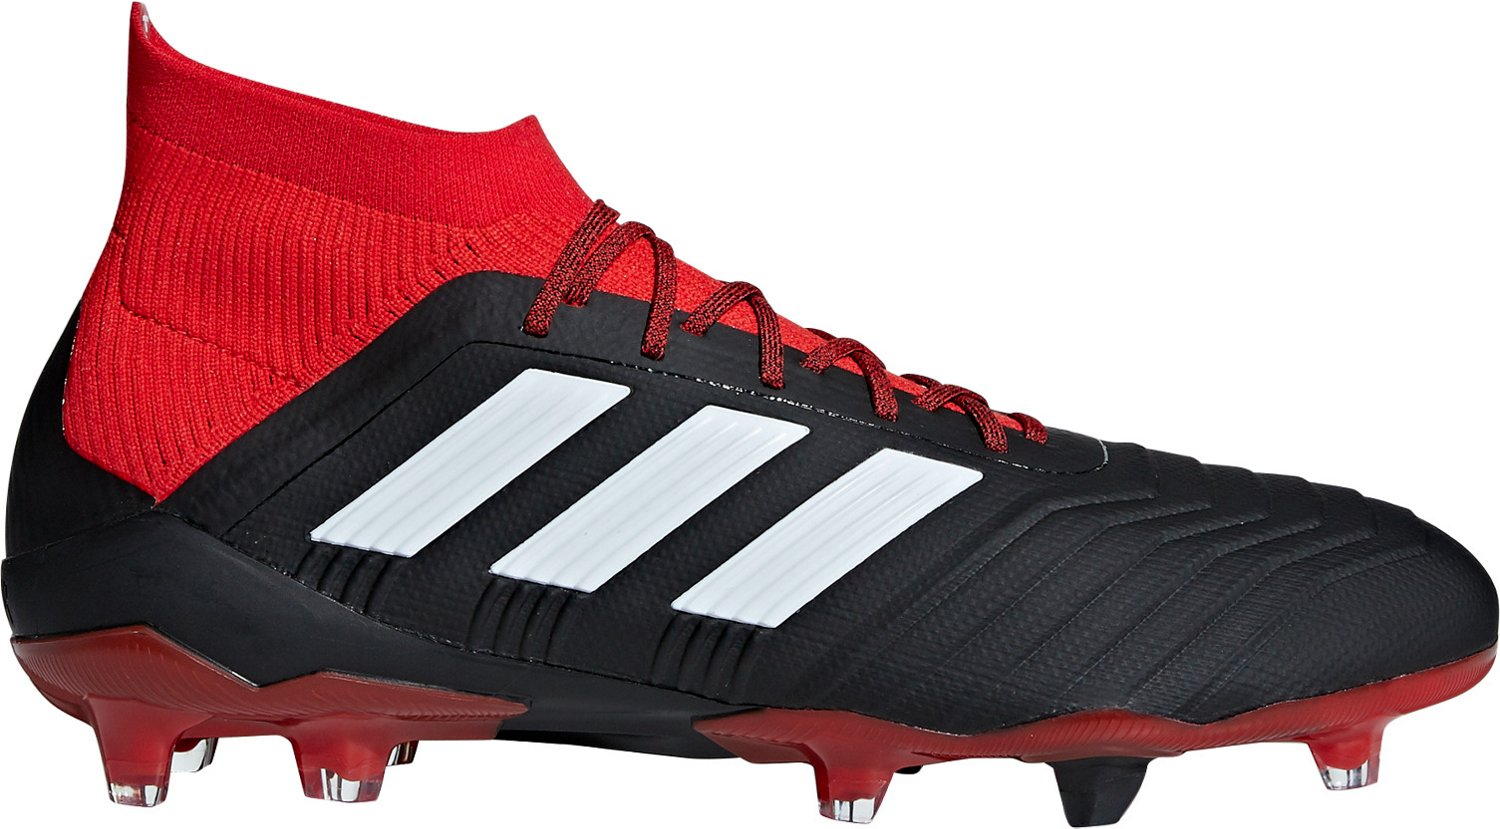 1c489570f Display product reviews for adidas Men's Predator 18.1 Firm Ground Soccer  Cleats